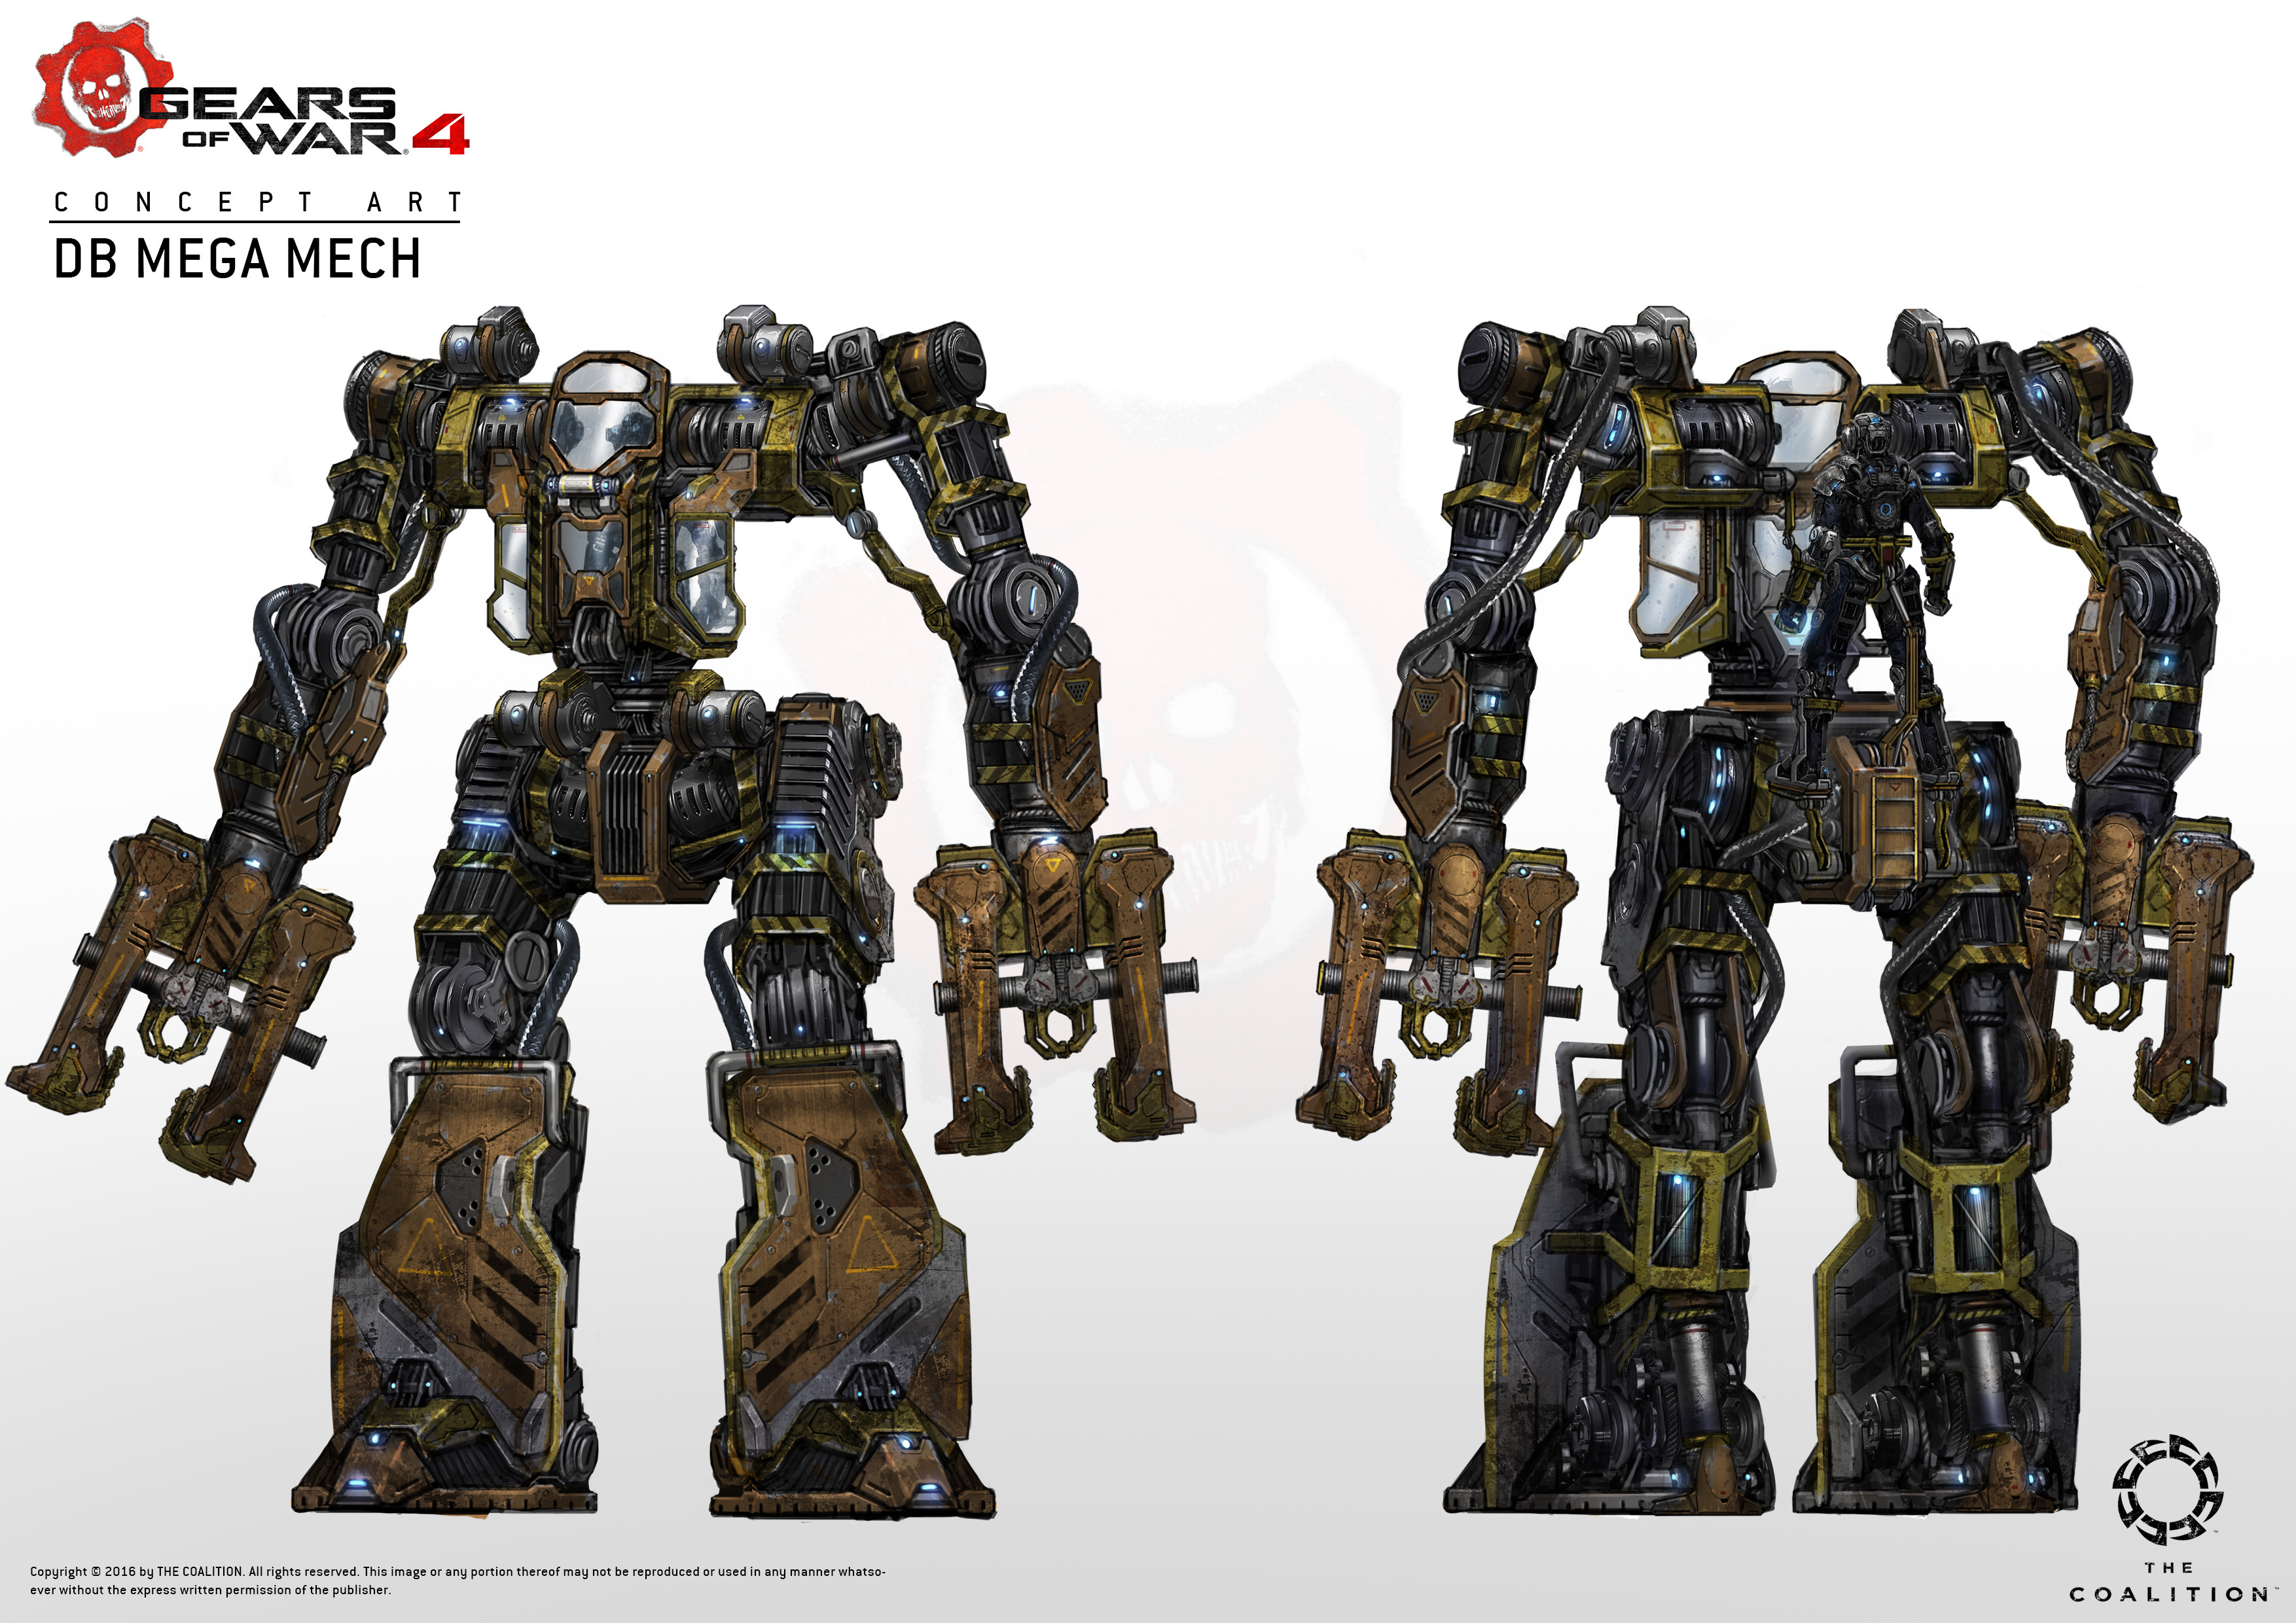 Then decided there would be two variants, construction and military, so I designed one for construction purposes, while giving a nod to the previous silverback exo-suit from previous games.